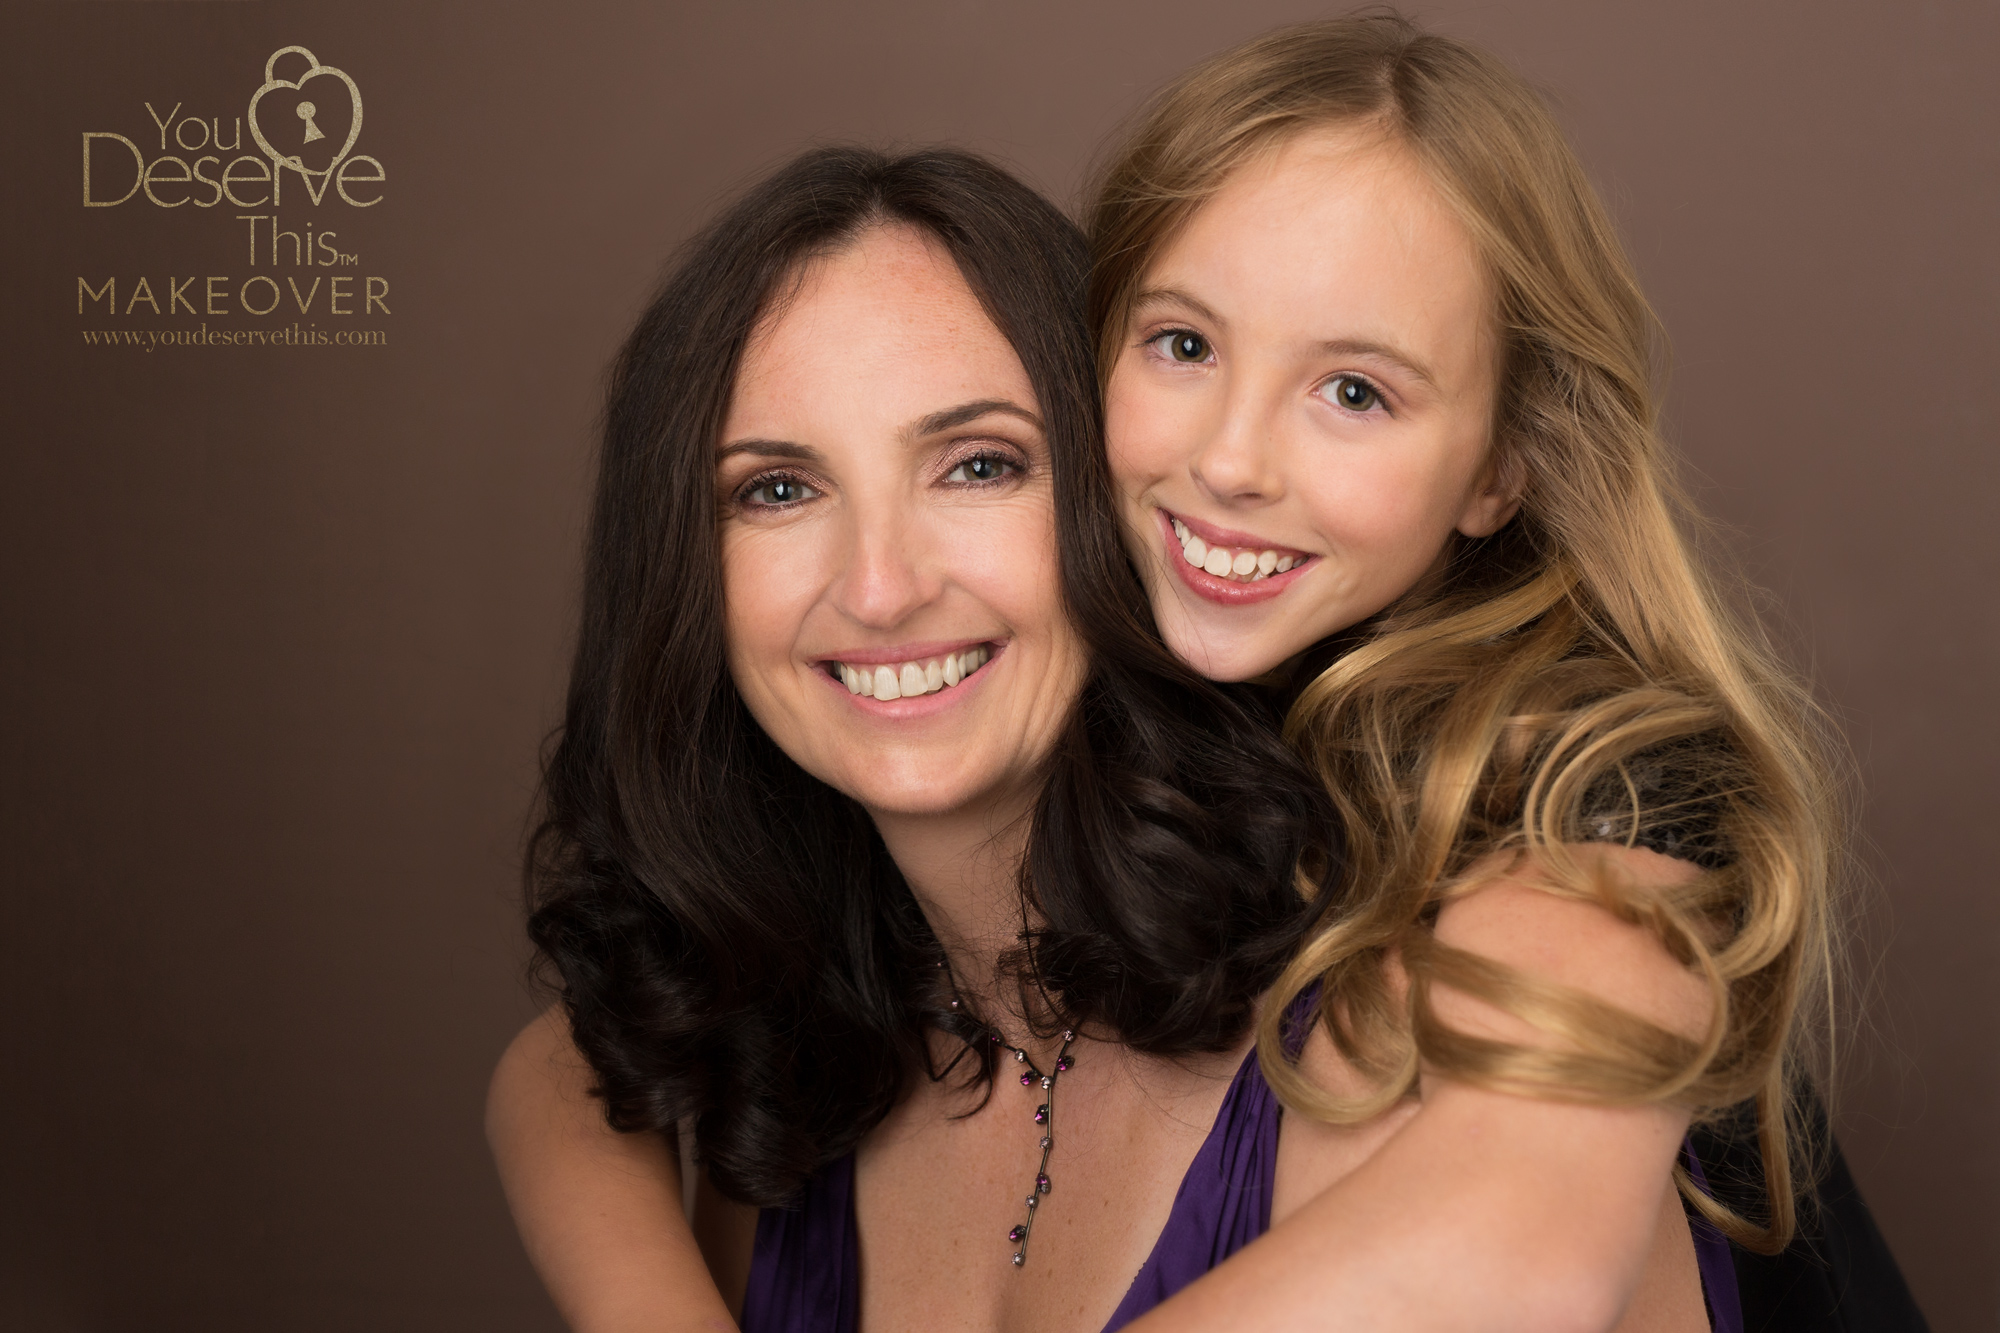 Our chocolate background is gorgeous, it's our most popular choice, our customers just love it. When did you last have a professional photograph taken? You Deserve a gorgeous portrait at  youdeservethis.com